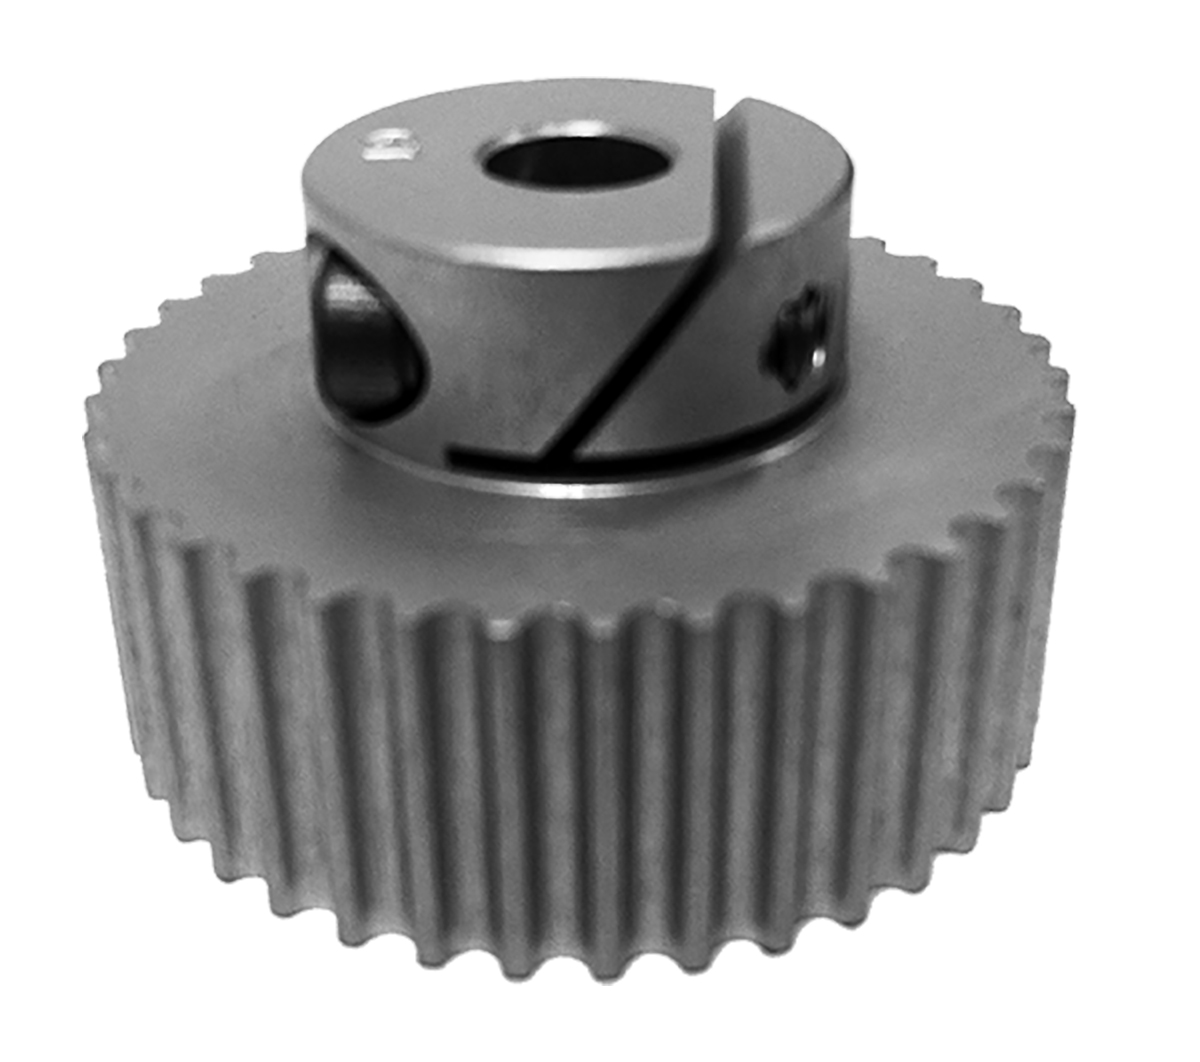 36-3P09MIA6 - E-Z Lock Hub Aluminum Powerhouse® Pulleys